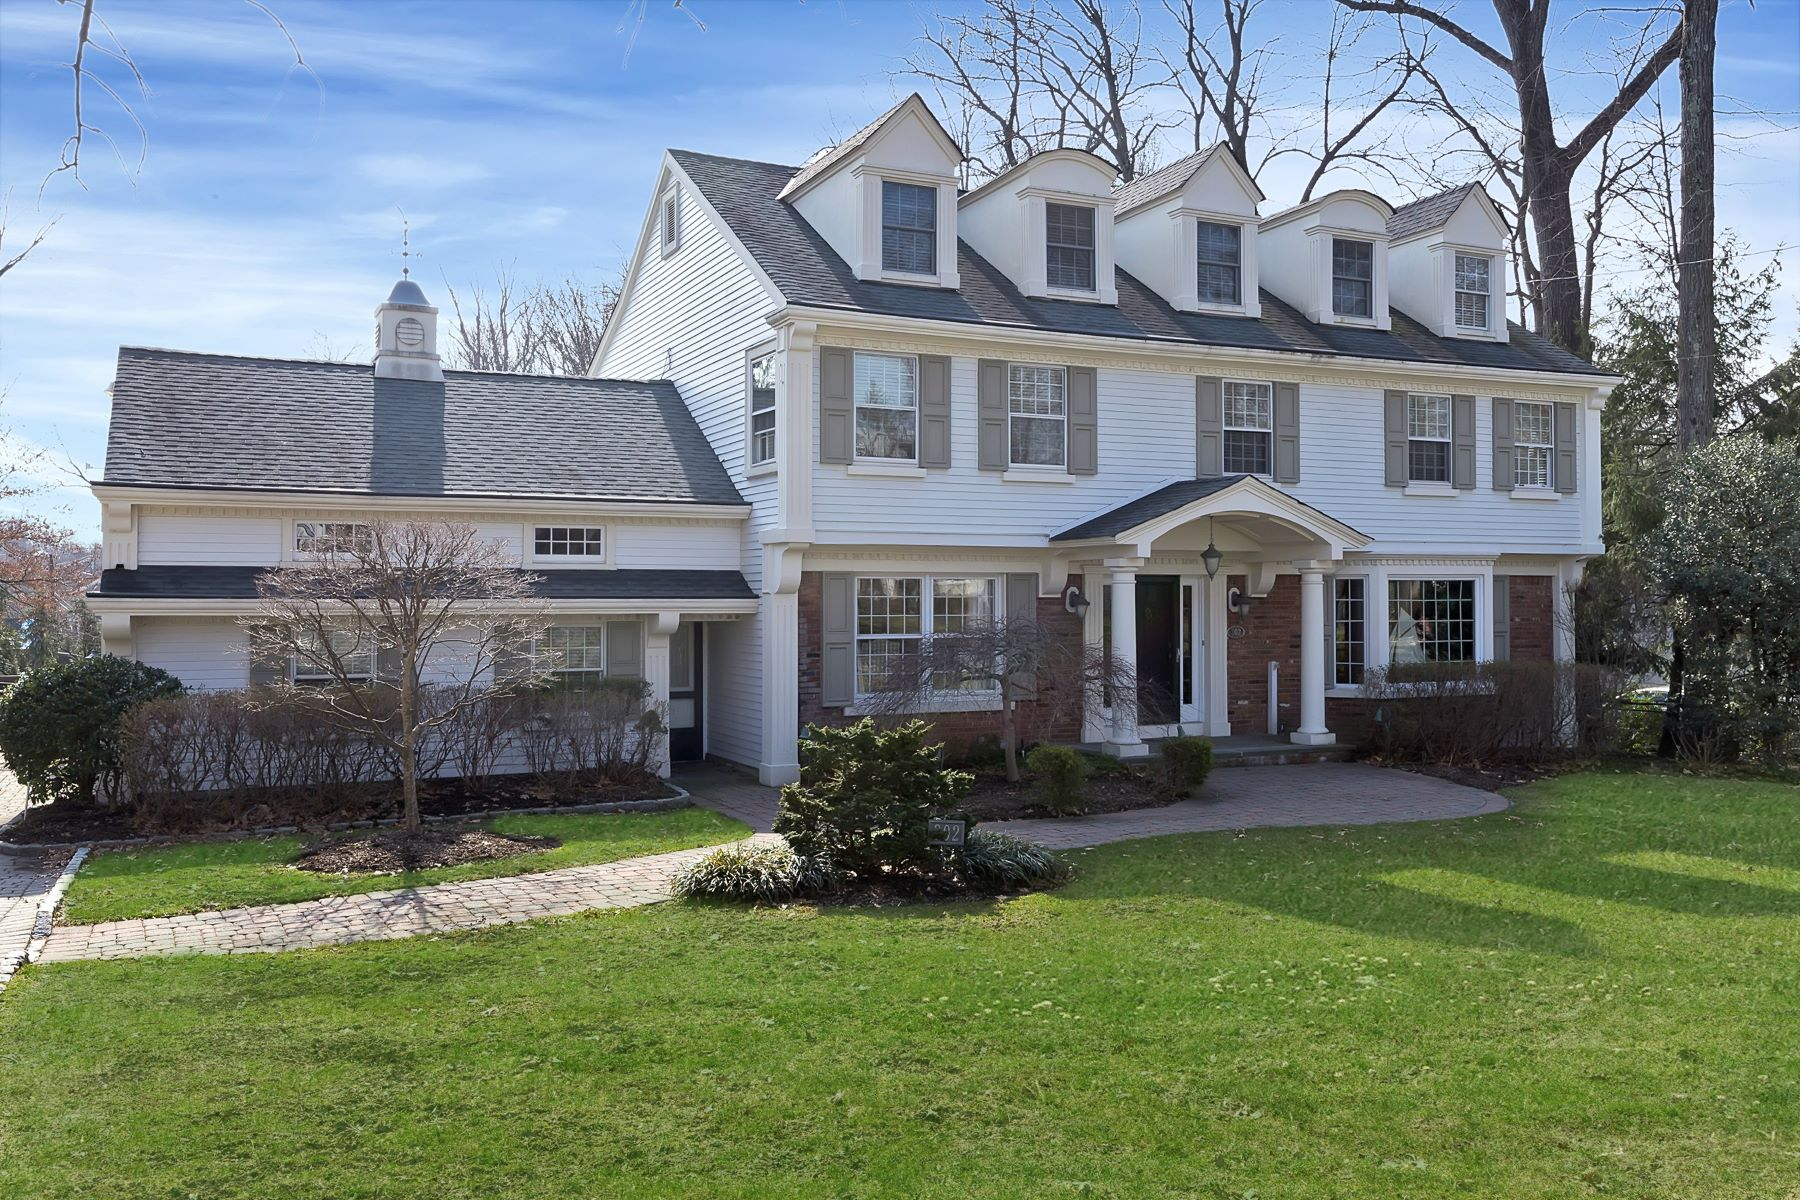 Single Family Home for Sale at Sophisticated Center Hall Colonial In The Sought After Willard School Area 302 Bedford Road Ridgewood, 07450 United States